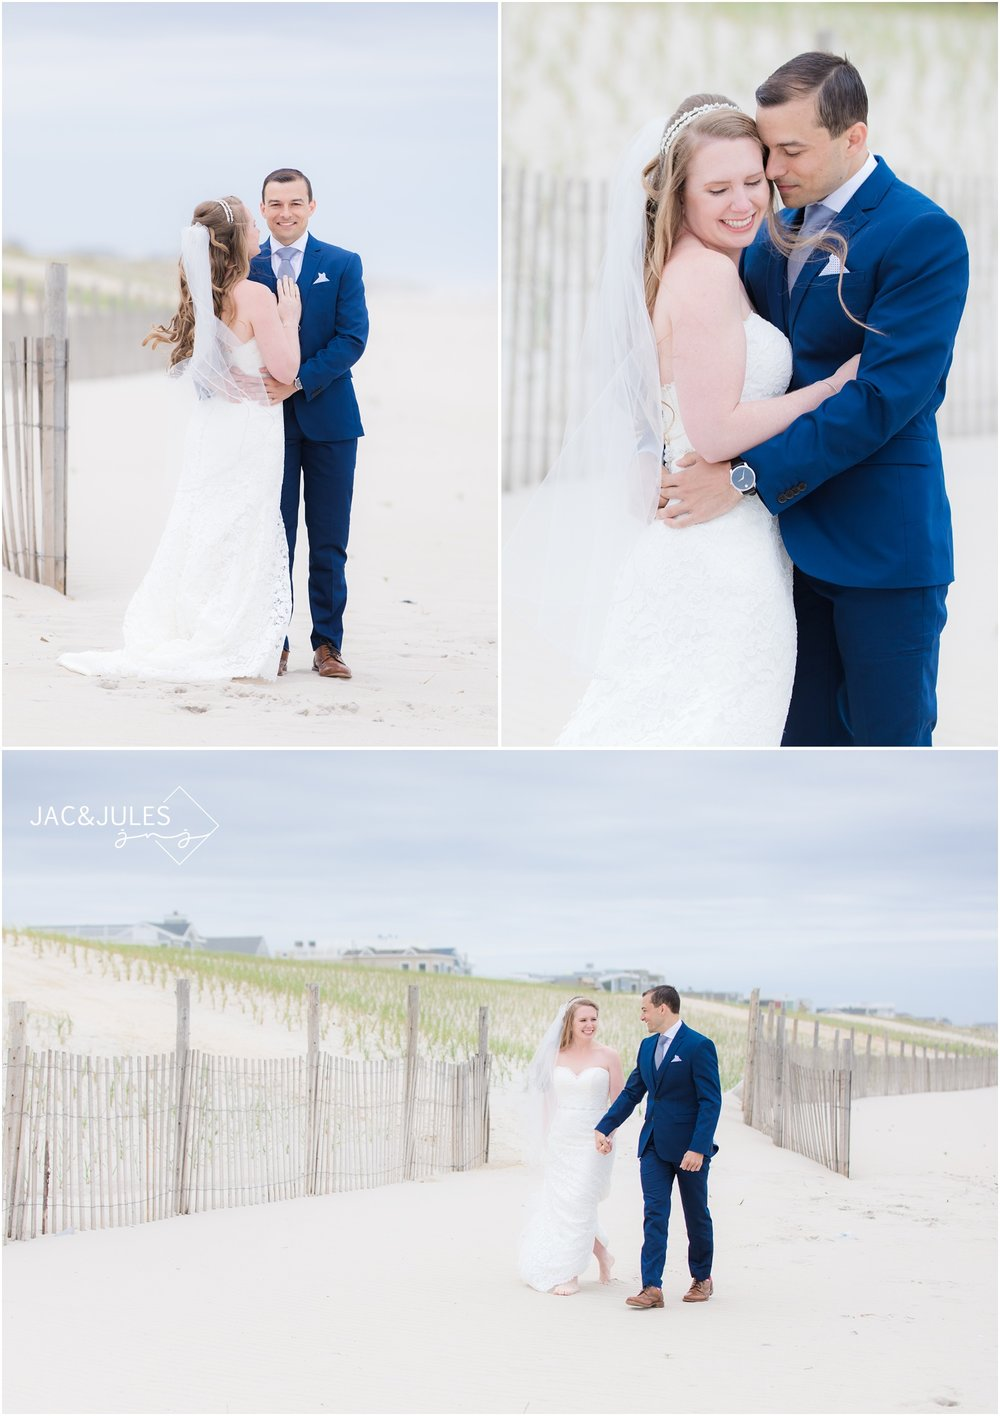 Bride and groom walking on the beach in LBI, NJ.